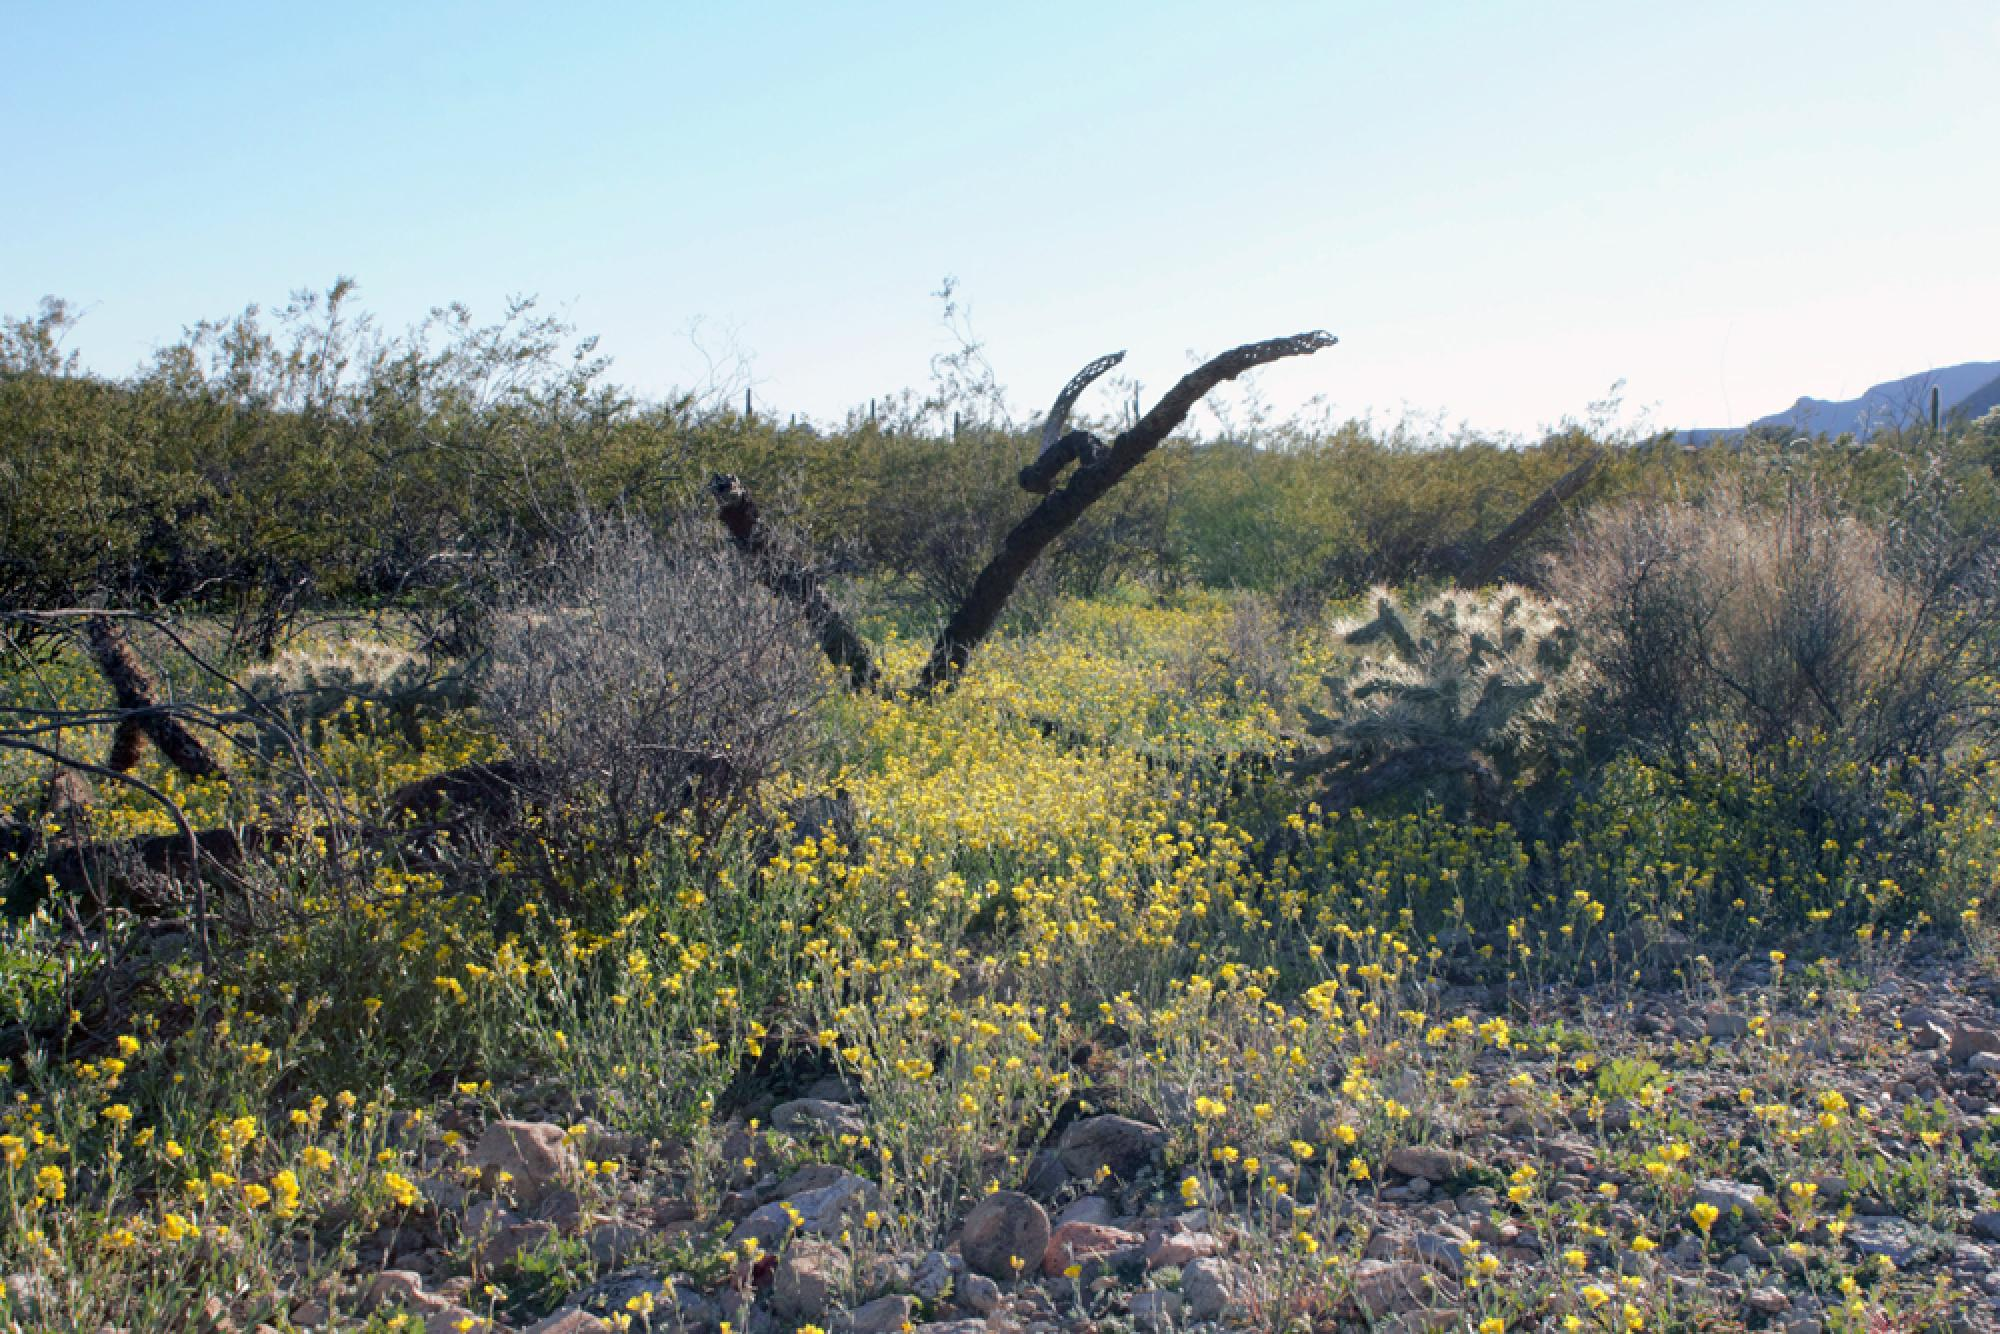 Physaria gordonii, commonly known as Gordon's bladderpod, was in full bloom after February's heavy rainfalls in southern Arizona.